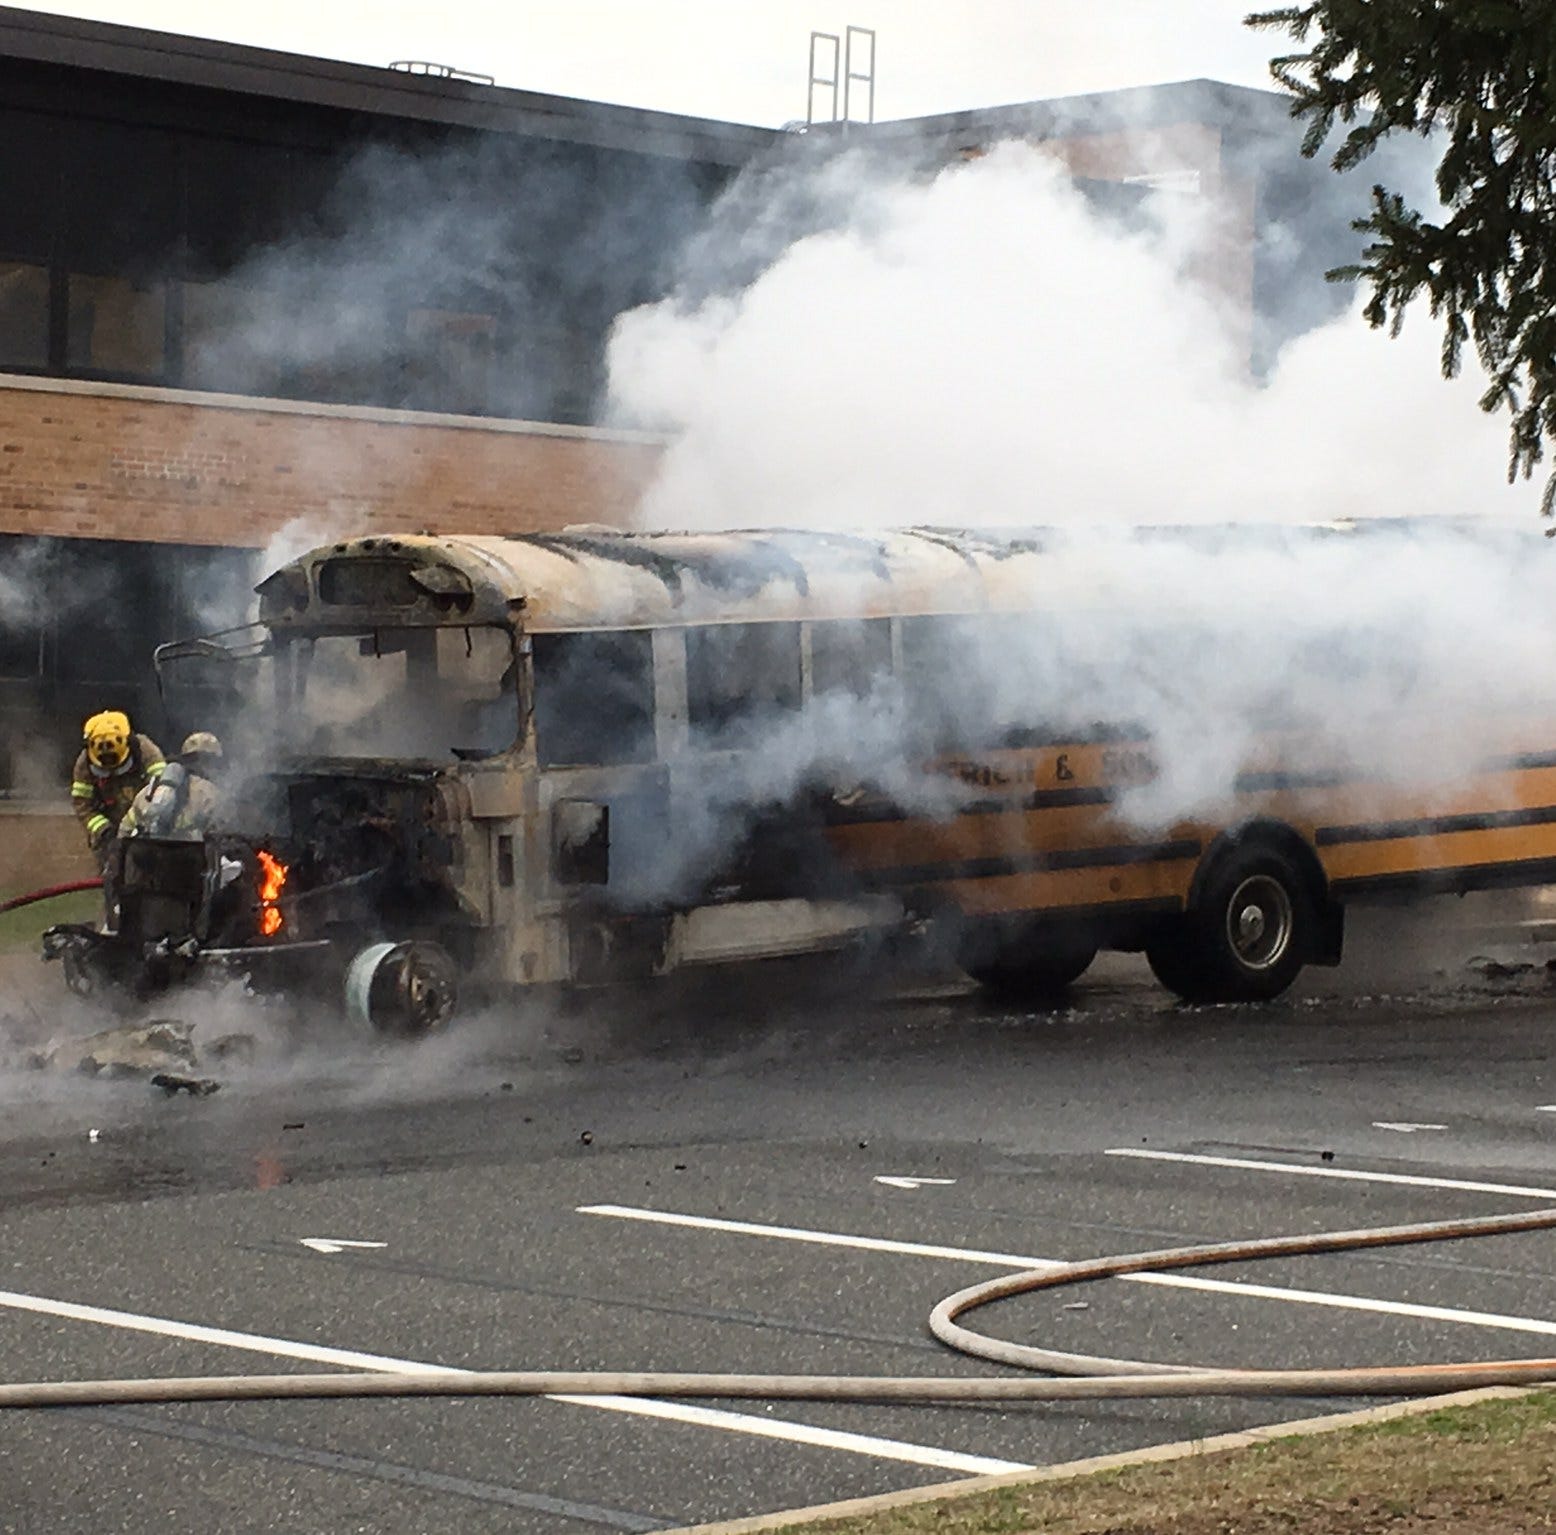 Middletown High School North bus fire: Students, staff safe